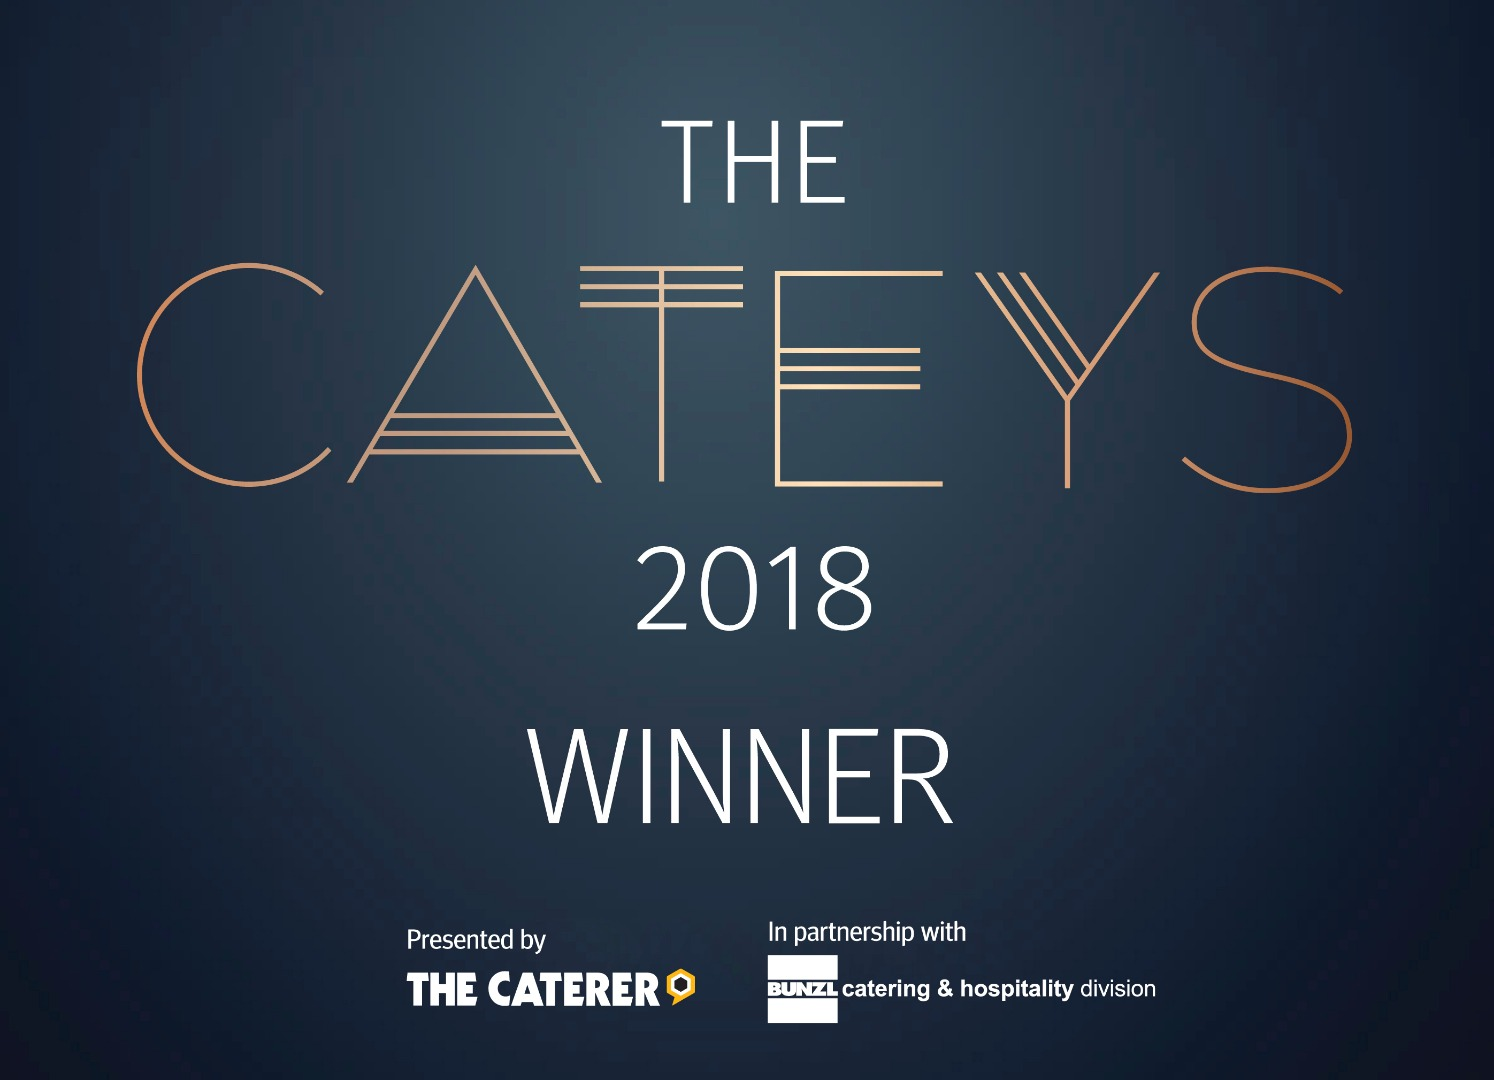 HEALTH AND NUTRITION AWARD: THE CATEYS